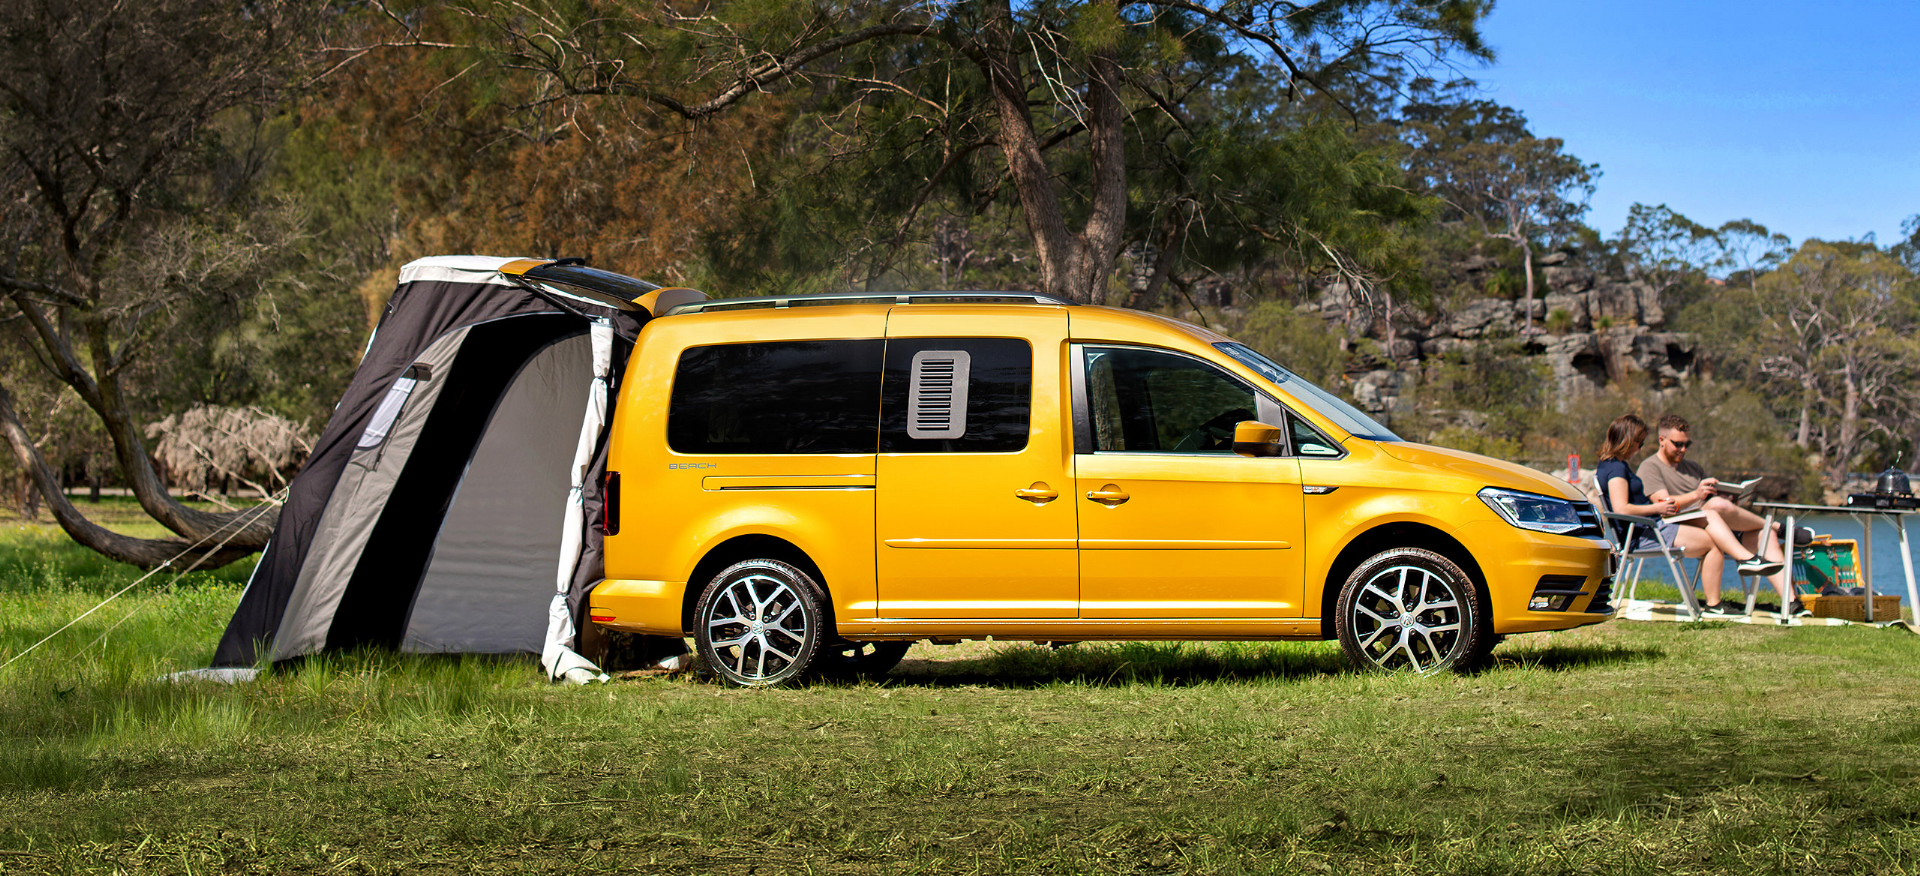 warrnambool city volkswagen caddy beach. Black Bedroom Furniture Sets. Home Design Ideas